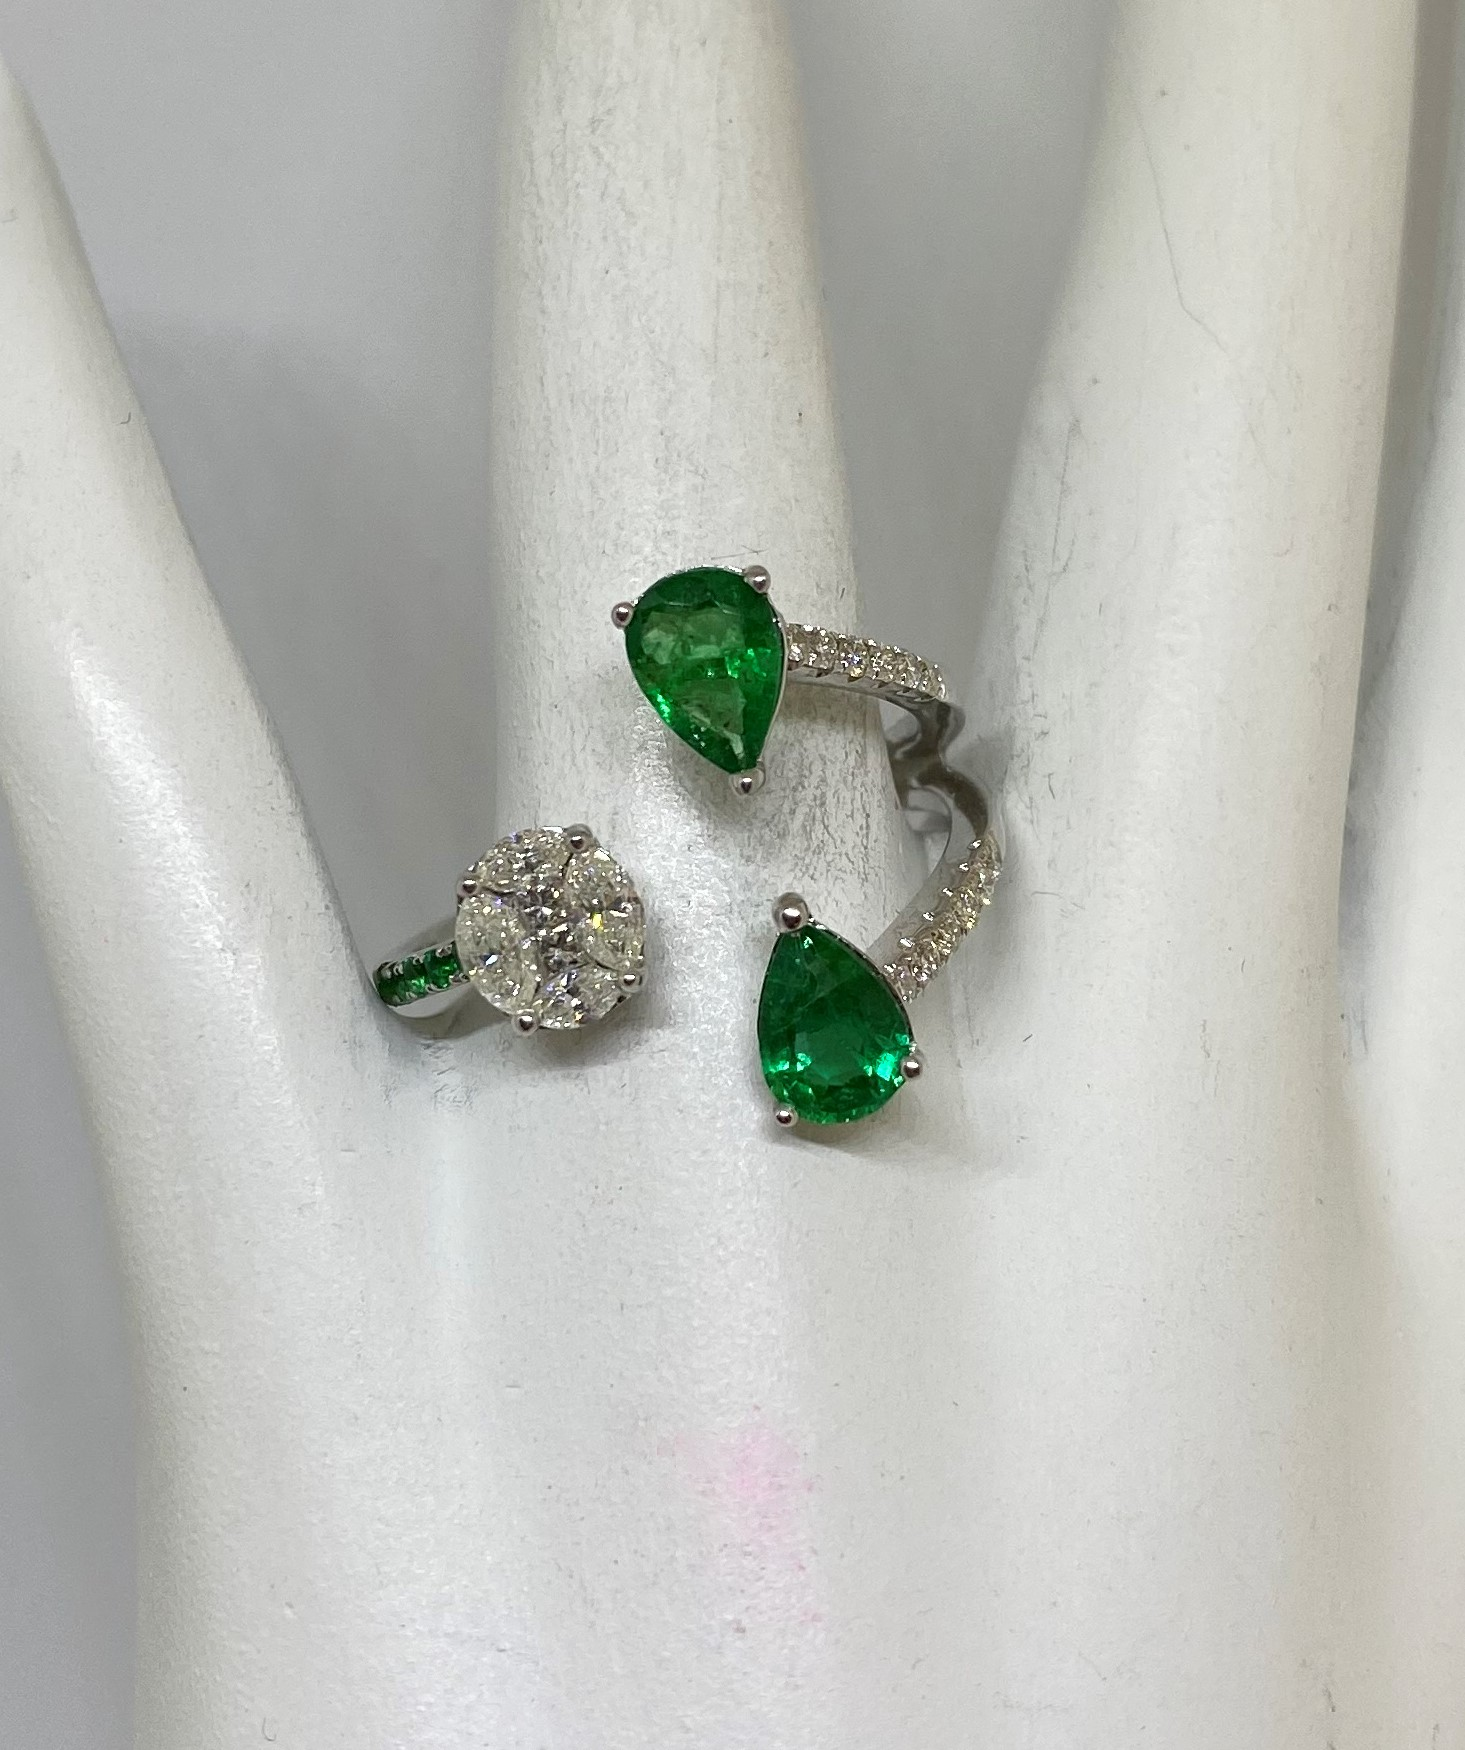 Over 1 Carat Emerald Cocktail Open Ring